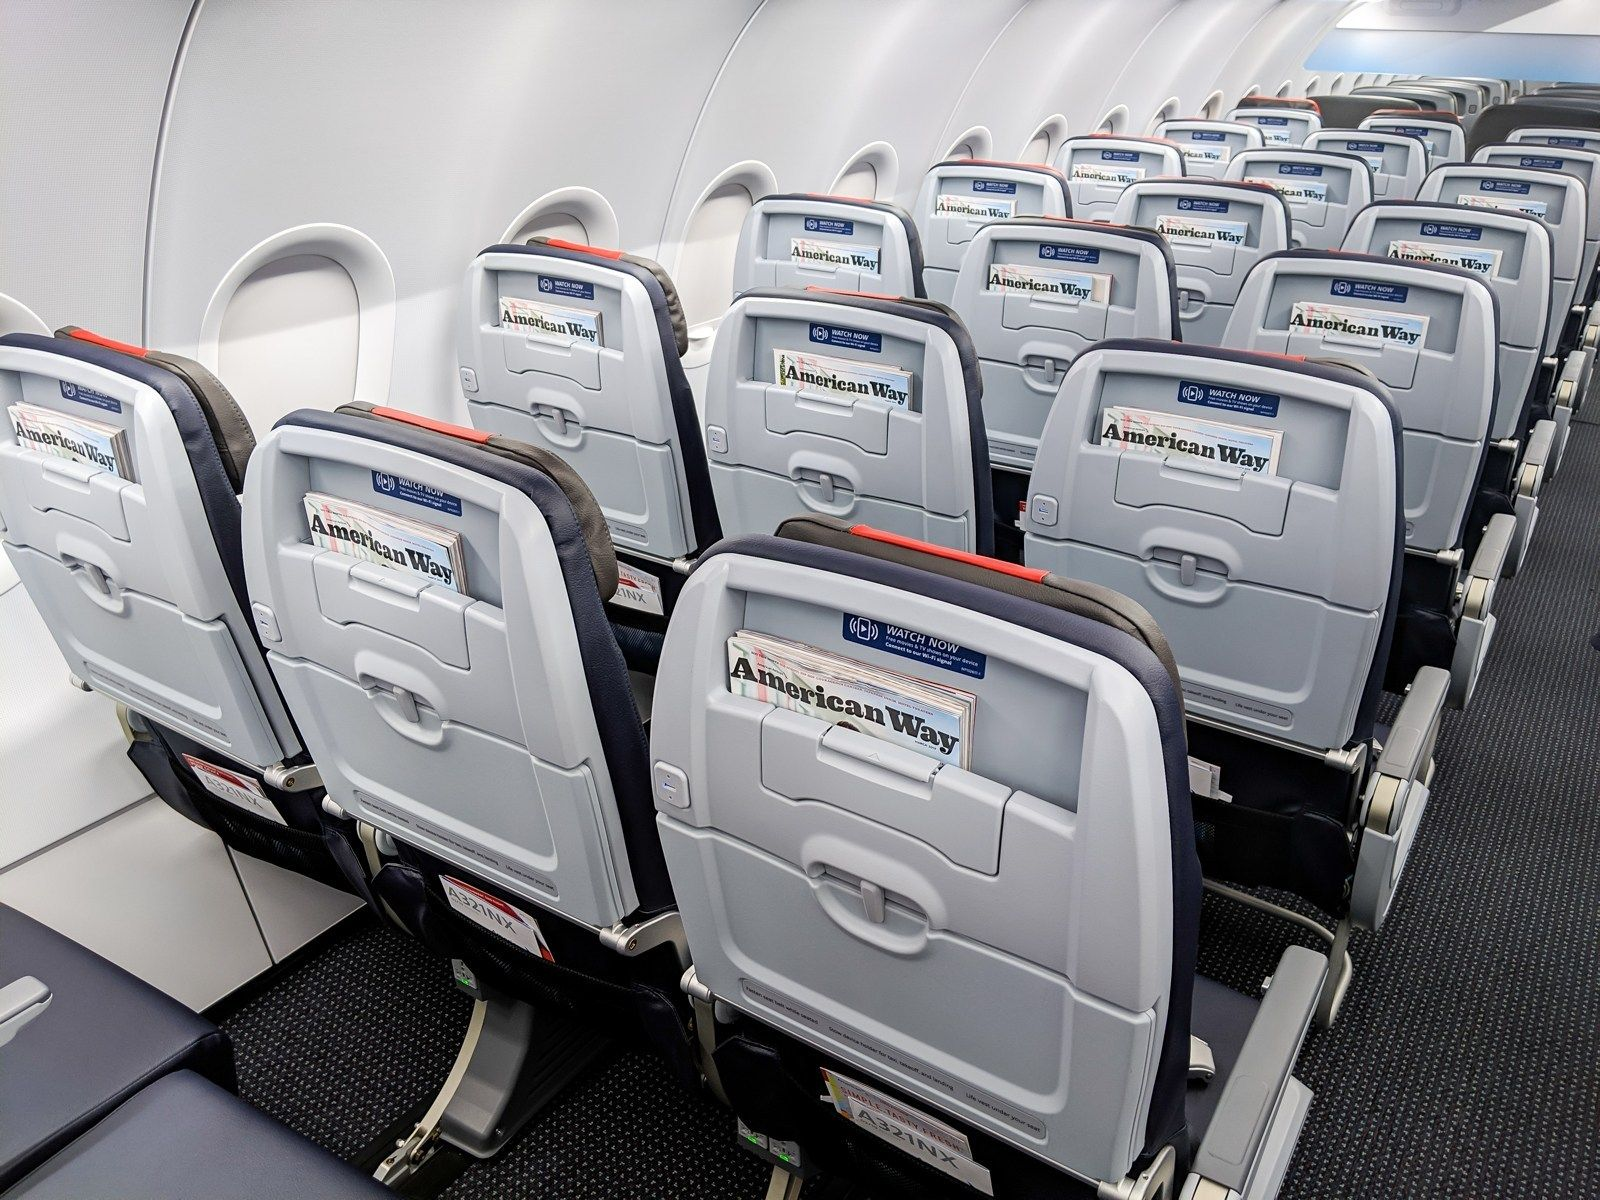 American Airlines Just Launched A New Configuration On Its A321 With More Seats Than On Any Of The 218 In Its Fleet American Airlines The Points Guy Airlines